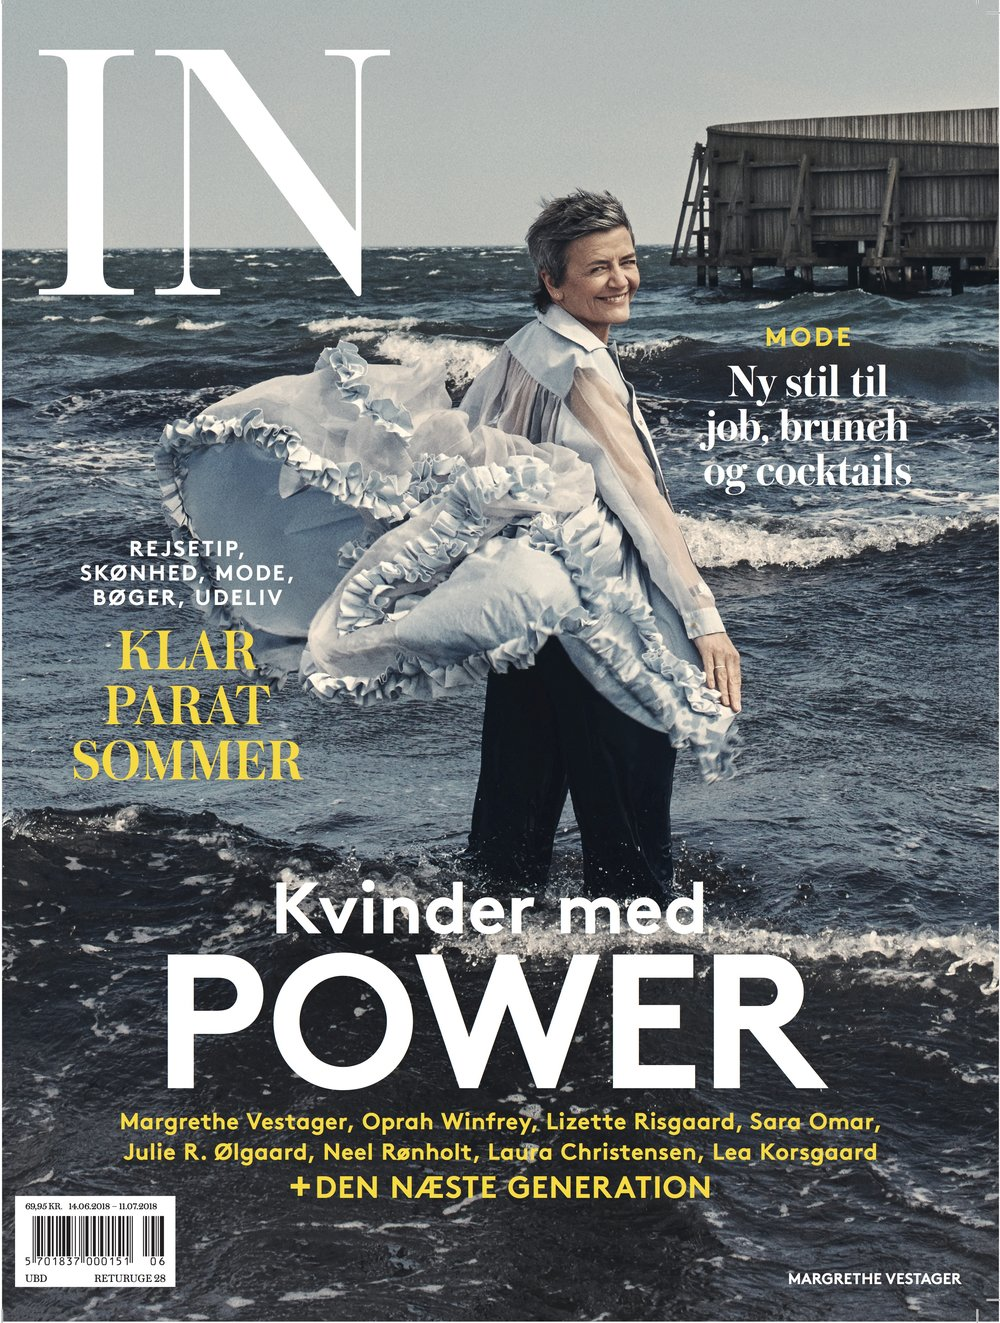 IN magazine DK - June/July 2018, European Commissioner for Competition on the cover in Brøgger